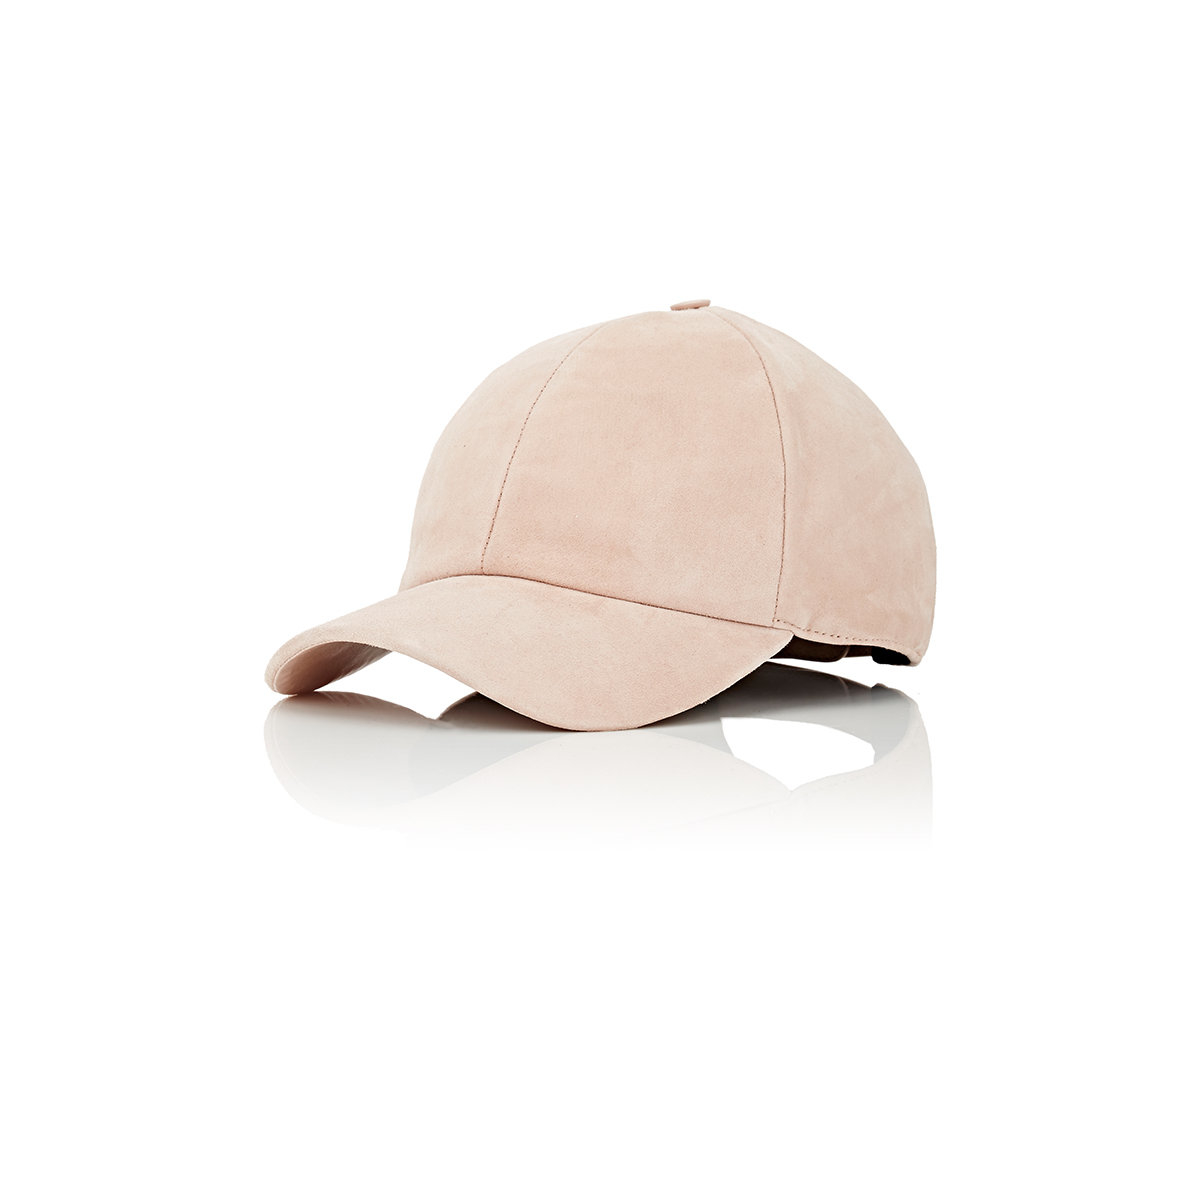 Lyst - Vianel Men s Suede Baseball Cap in Natural for Men 06614a33b83